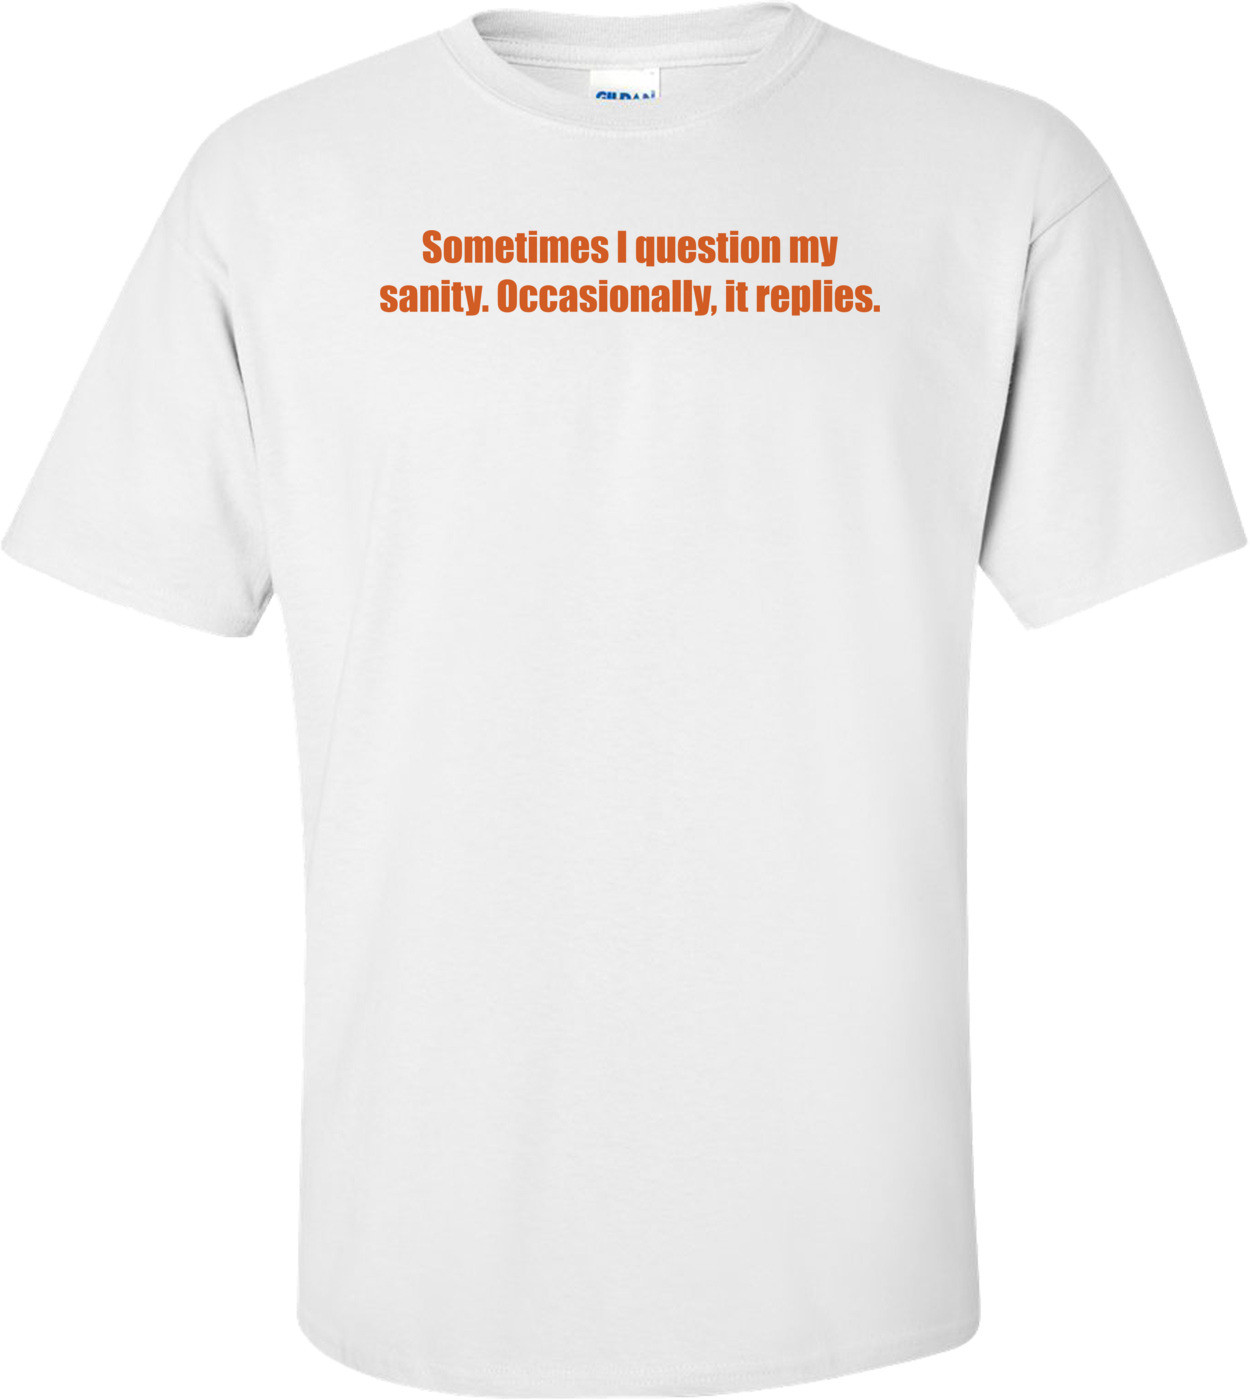 Sometimes I question my sanity. Occasionally, it replies. Shirt